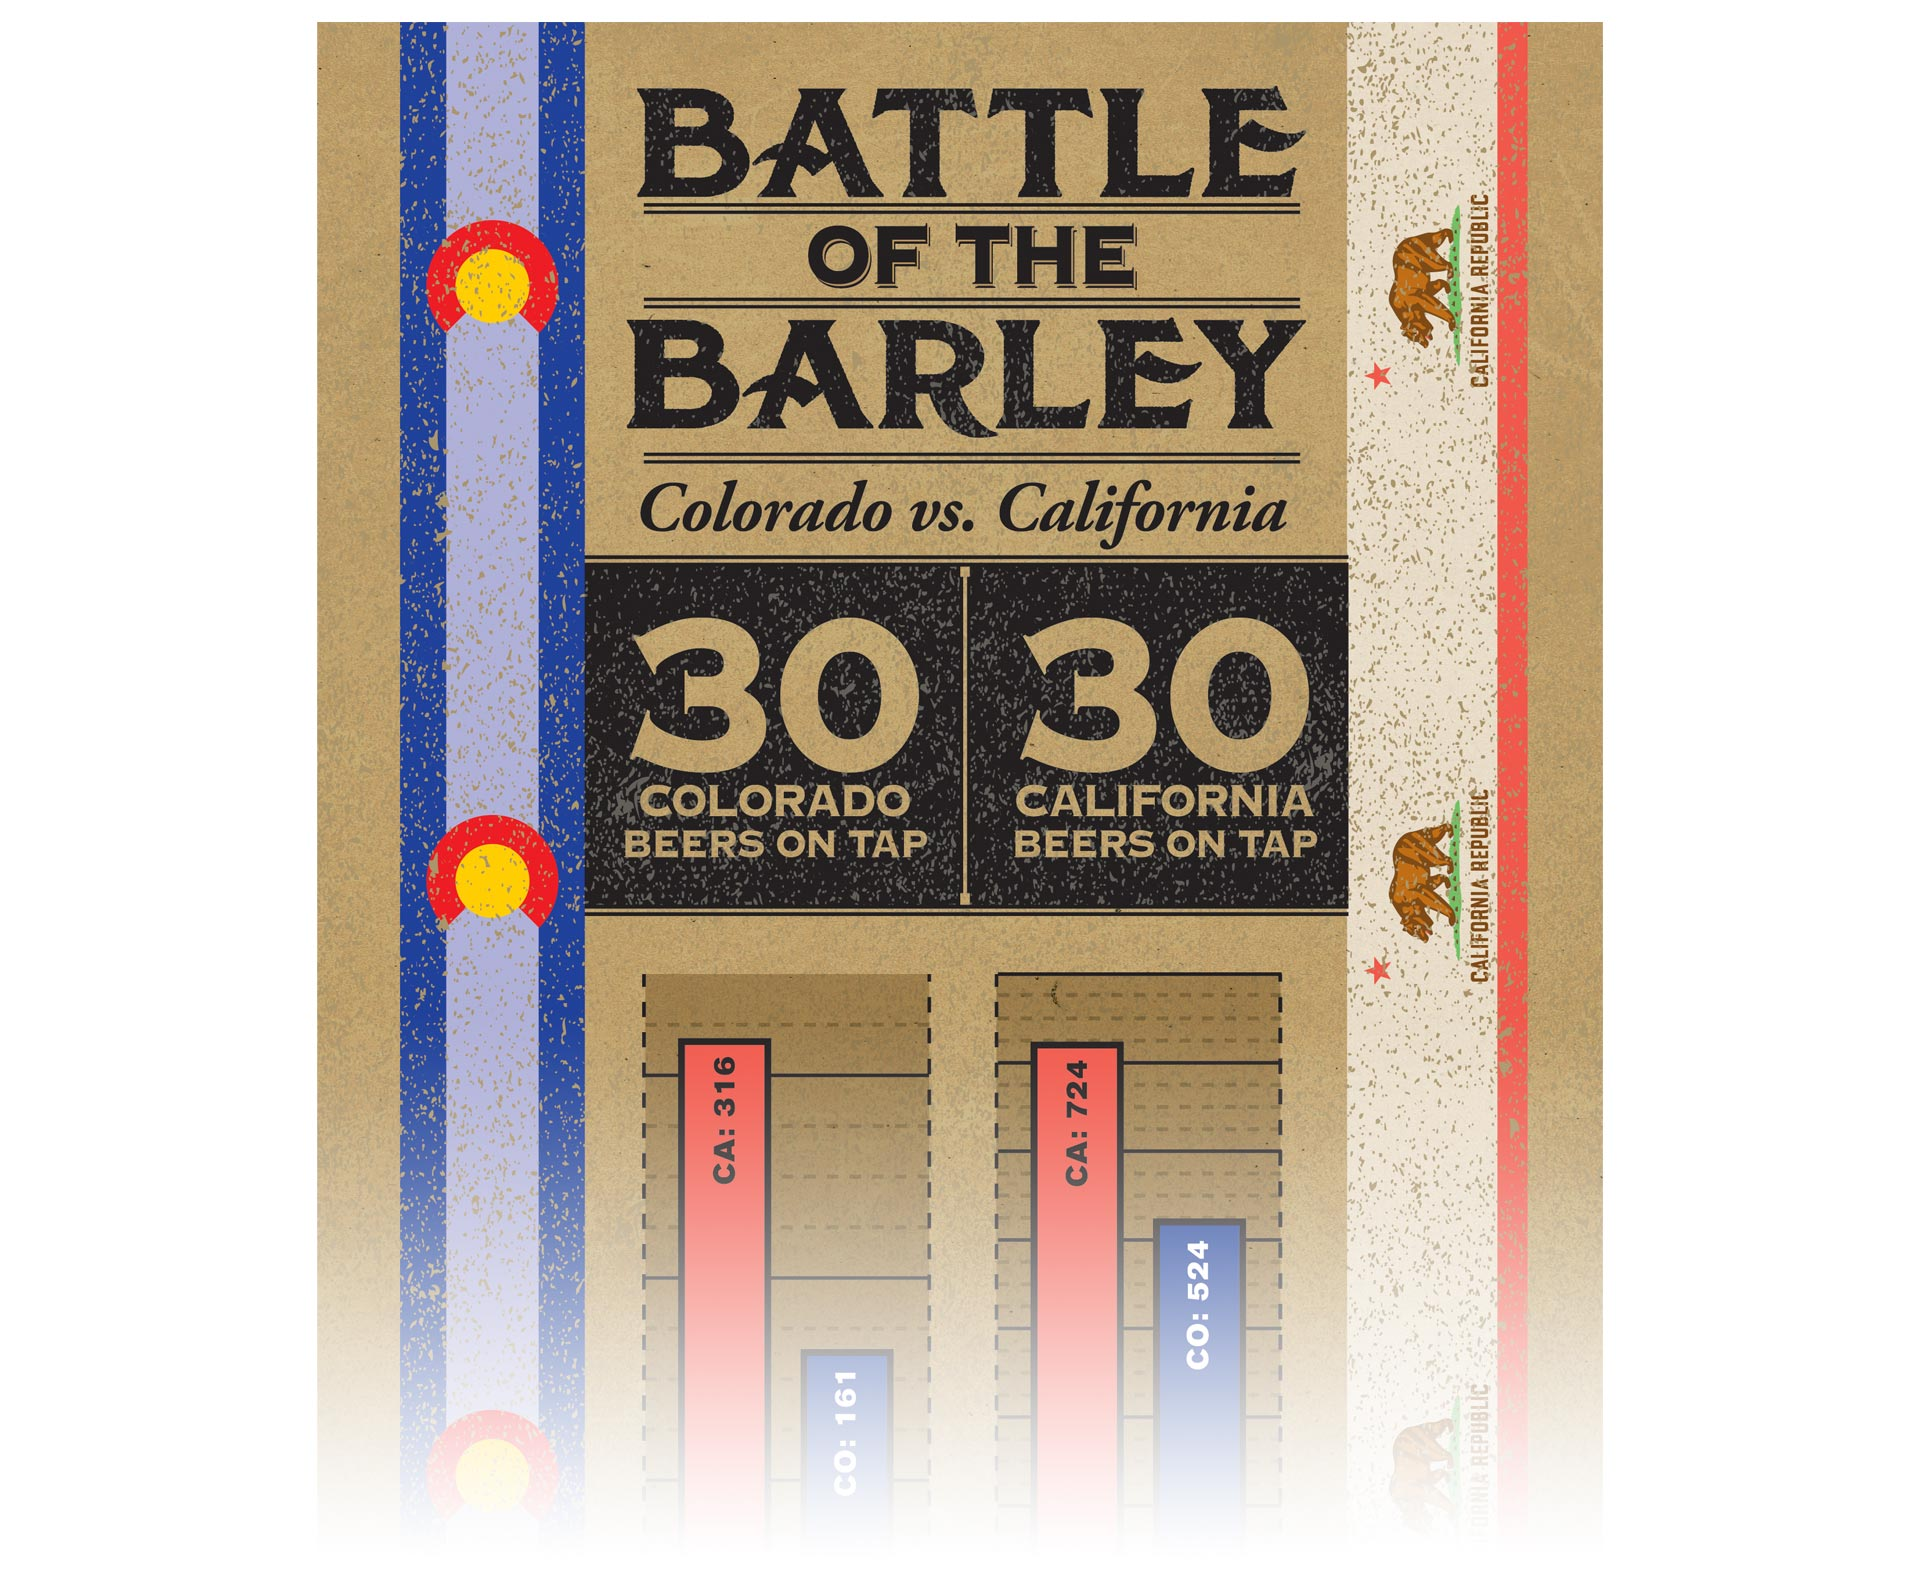 Battle of the Barley